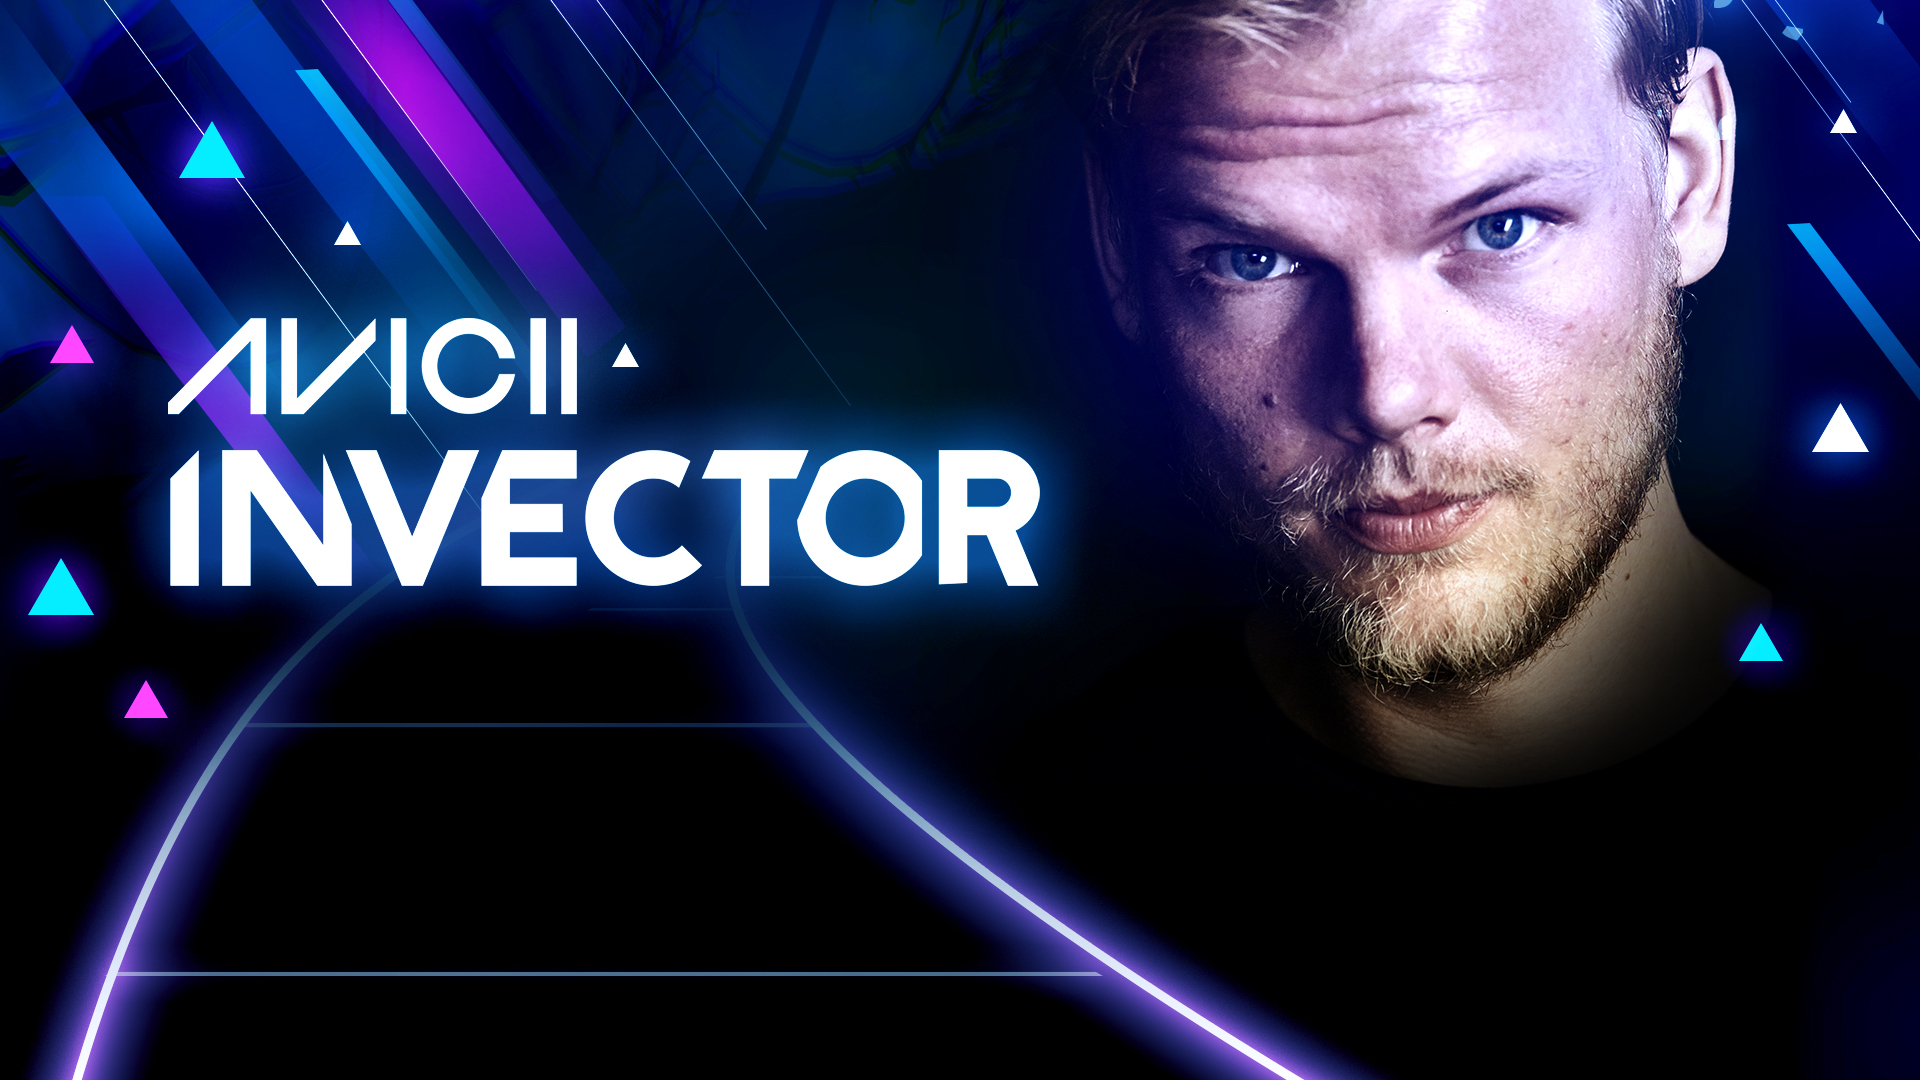 AVICII Invector Re-Launching On PS4, Coming To PC, Xbox One & Switch